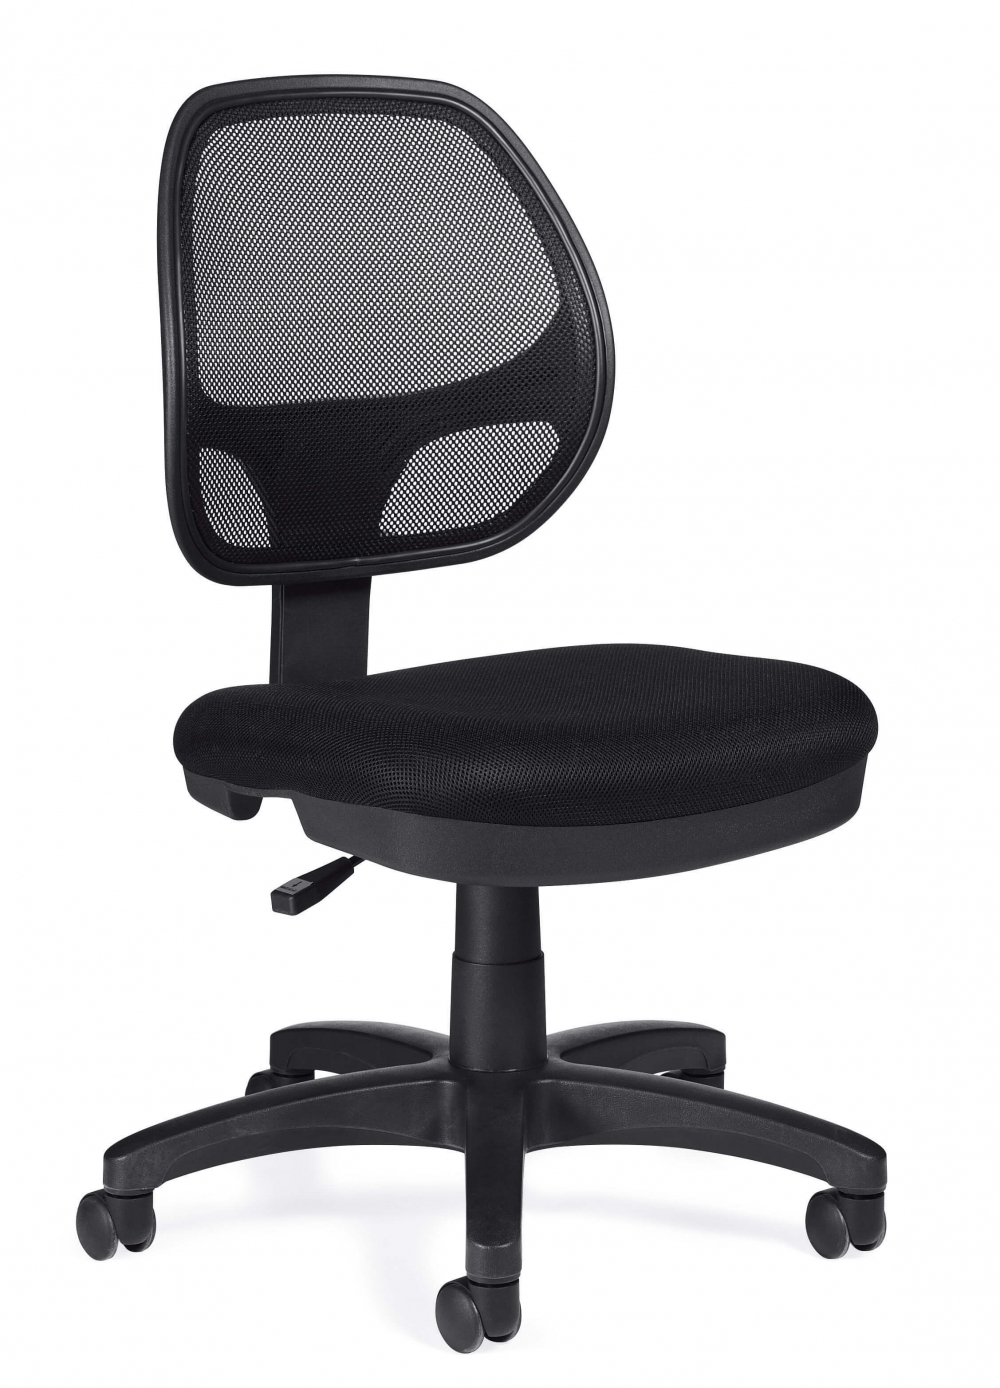 office-furniture-chairs-affordable-office-chairs.jpg